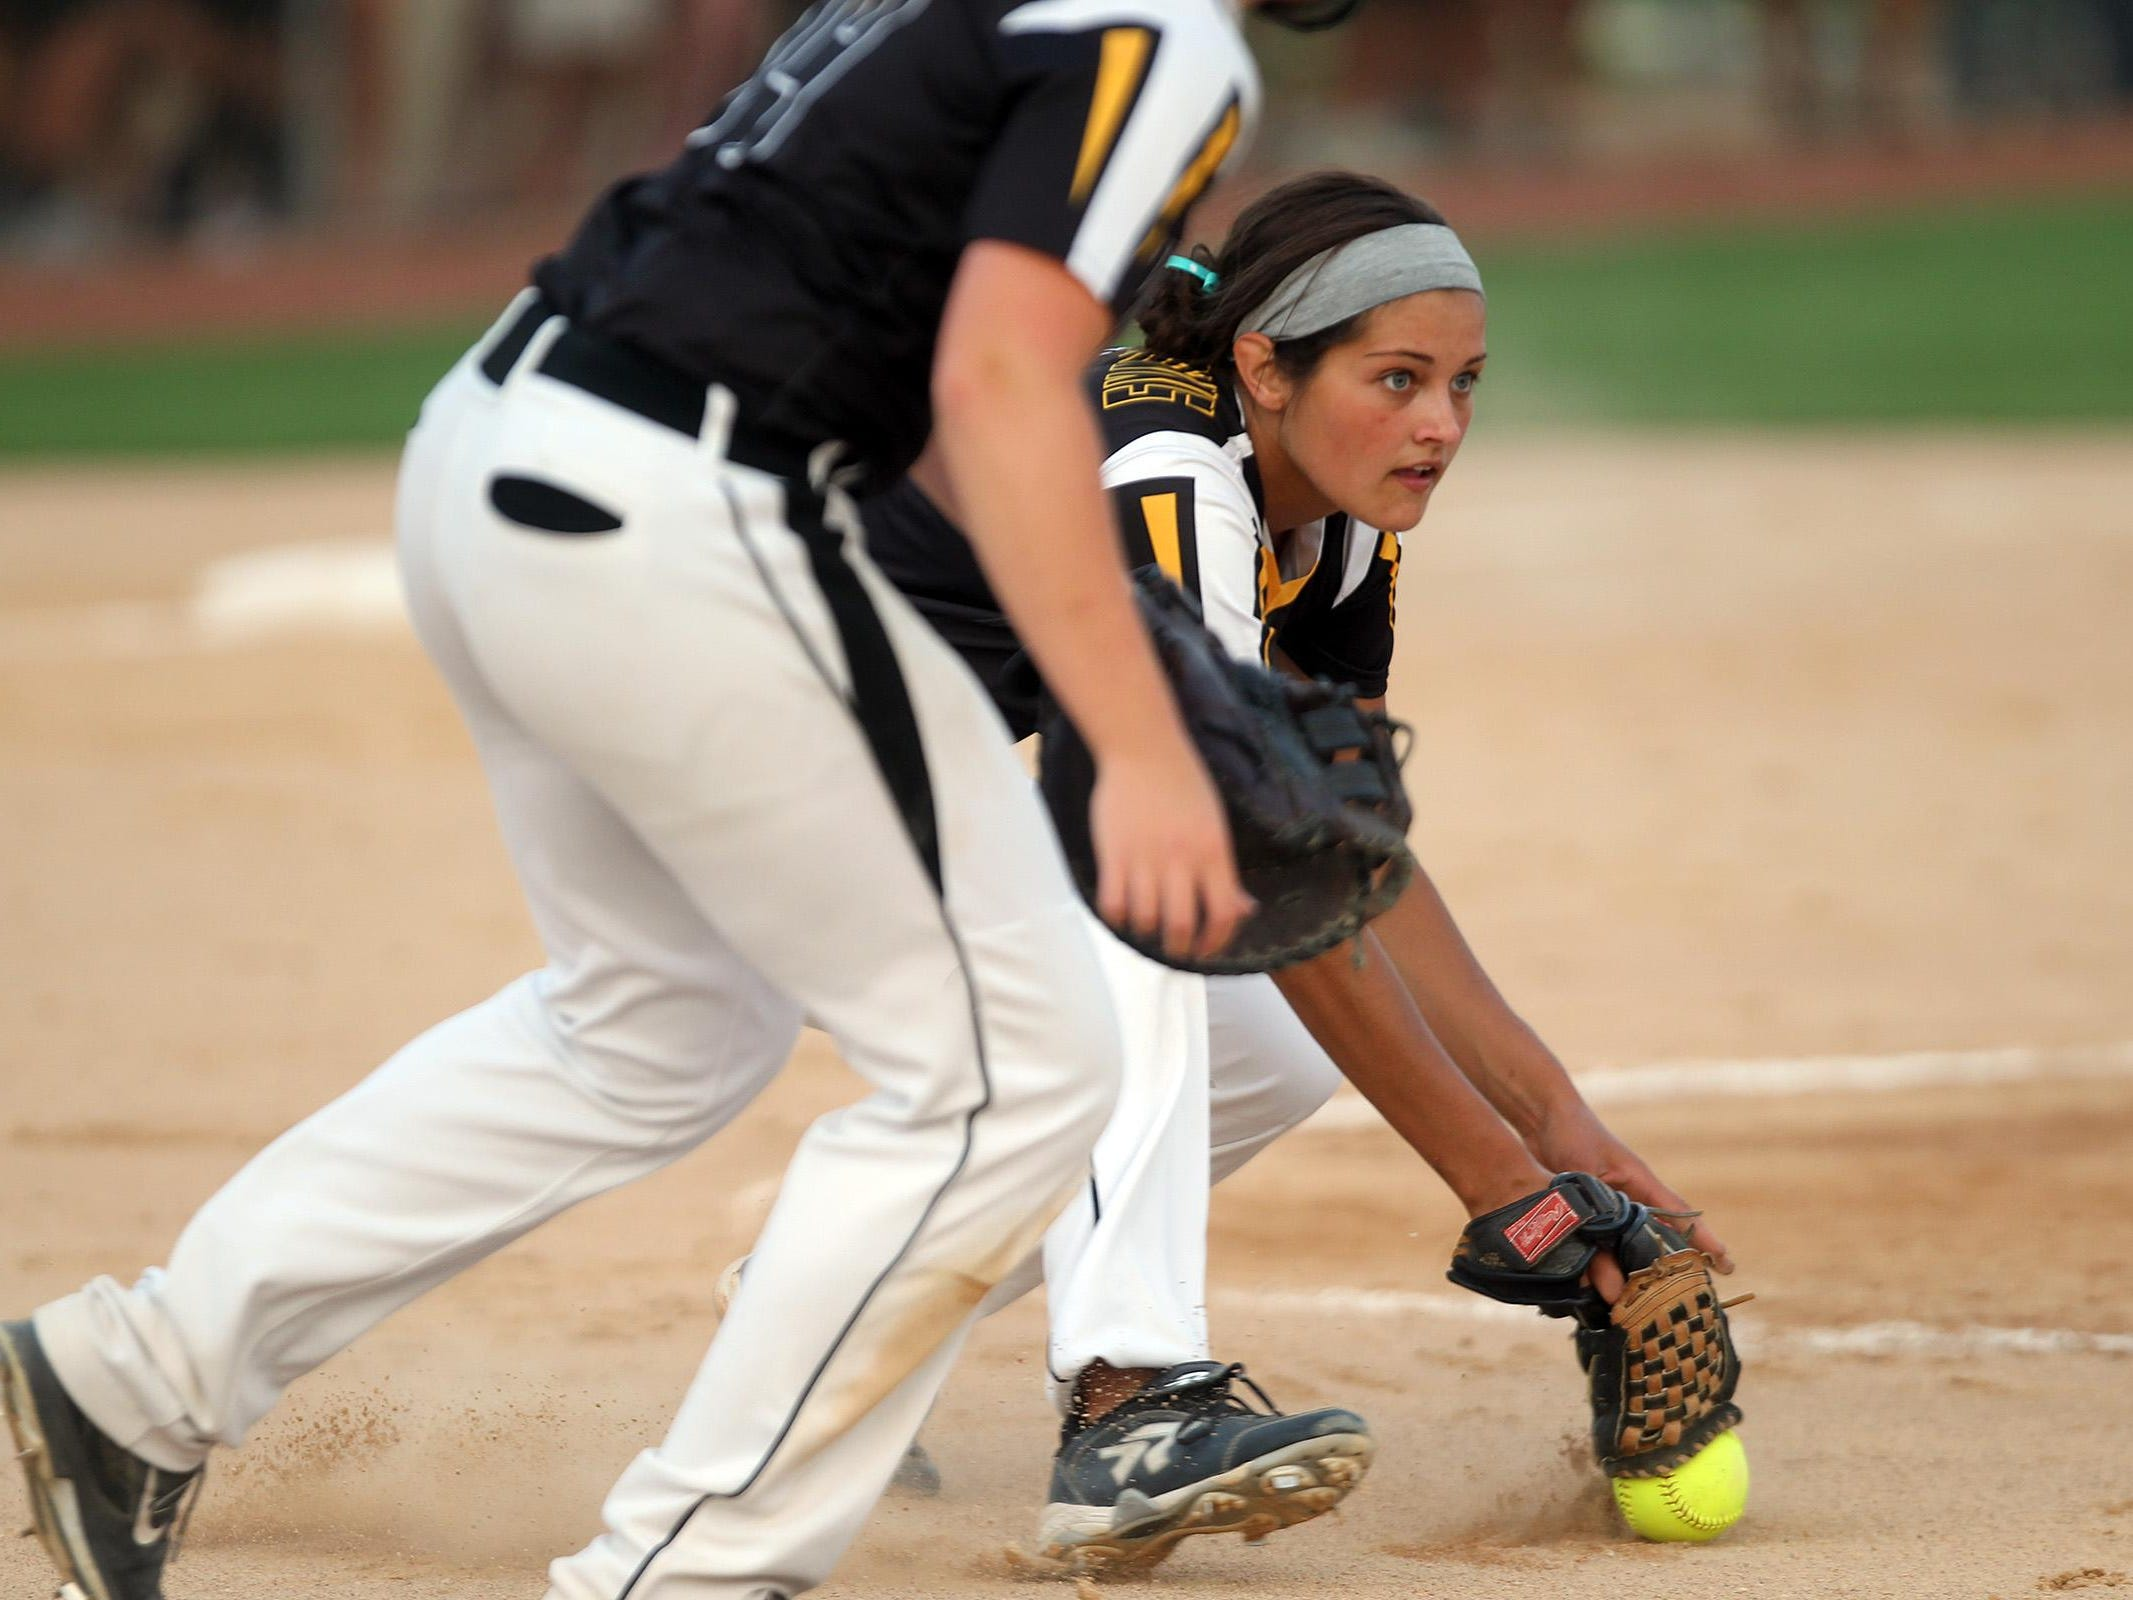 Mid-Prairie pitcher Emma Troyer tries to scoop up a bunt during the Golden Hawks' regional game at Solon on Friday, July 10, 2015. David Scrivner / Iowa City Press-Citizen